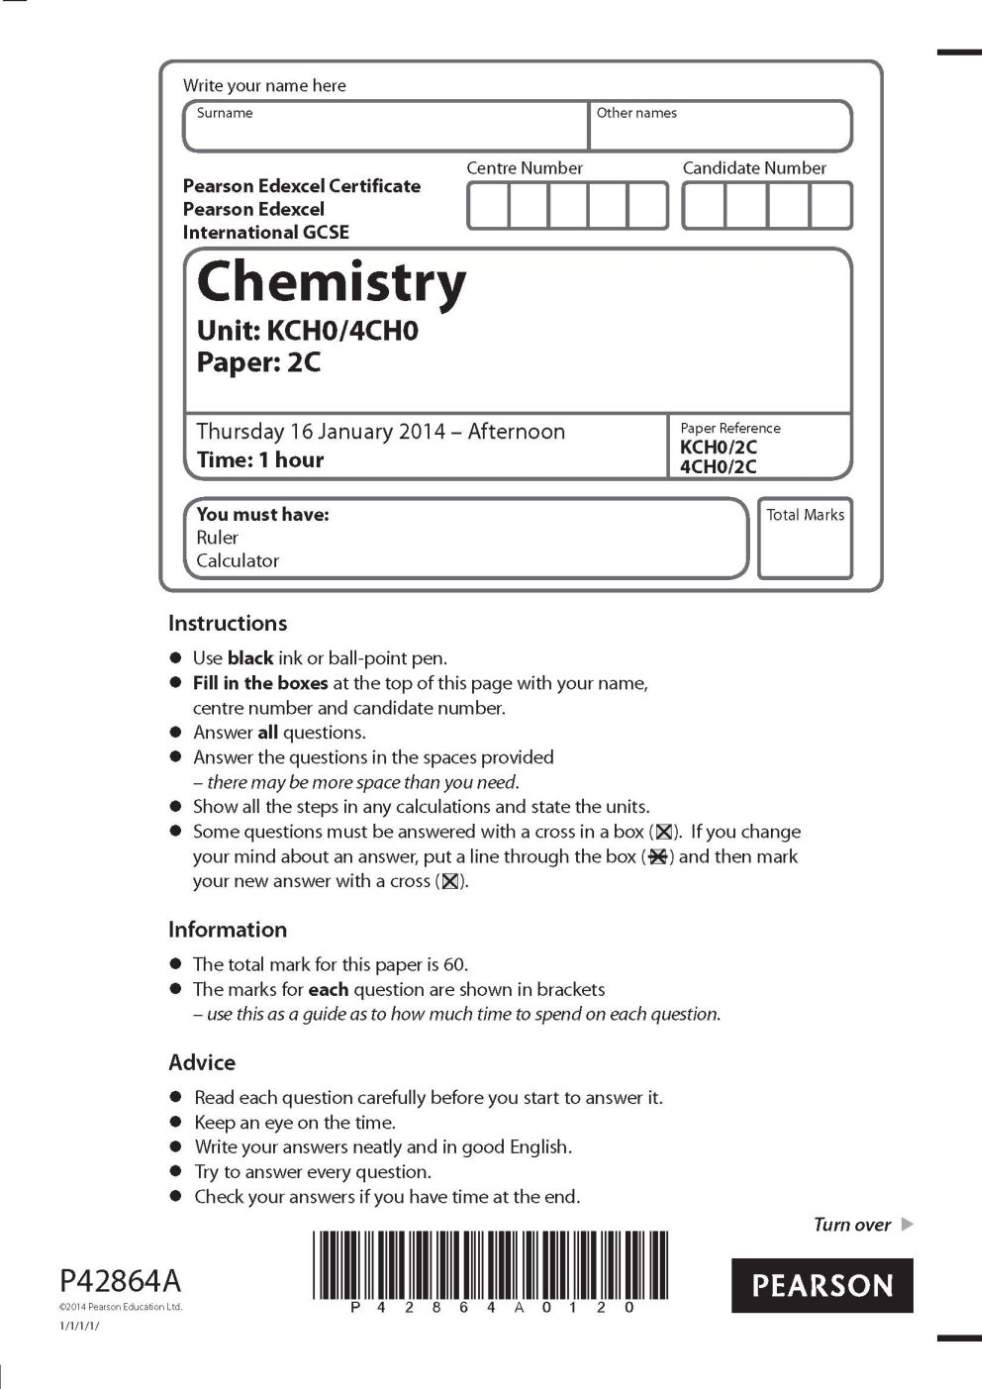 EDEXCEL IGCSE Chemistry question papers - 2018 2019 Student